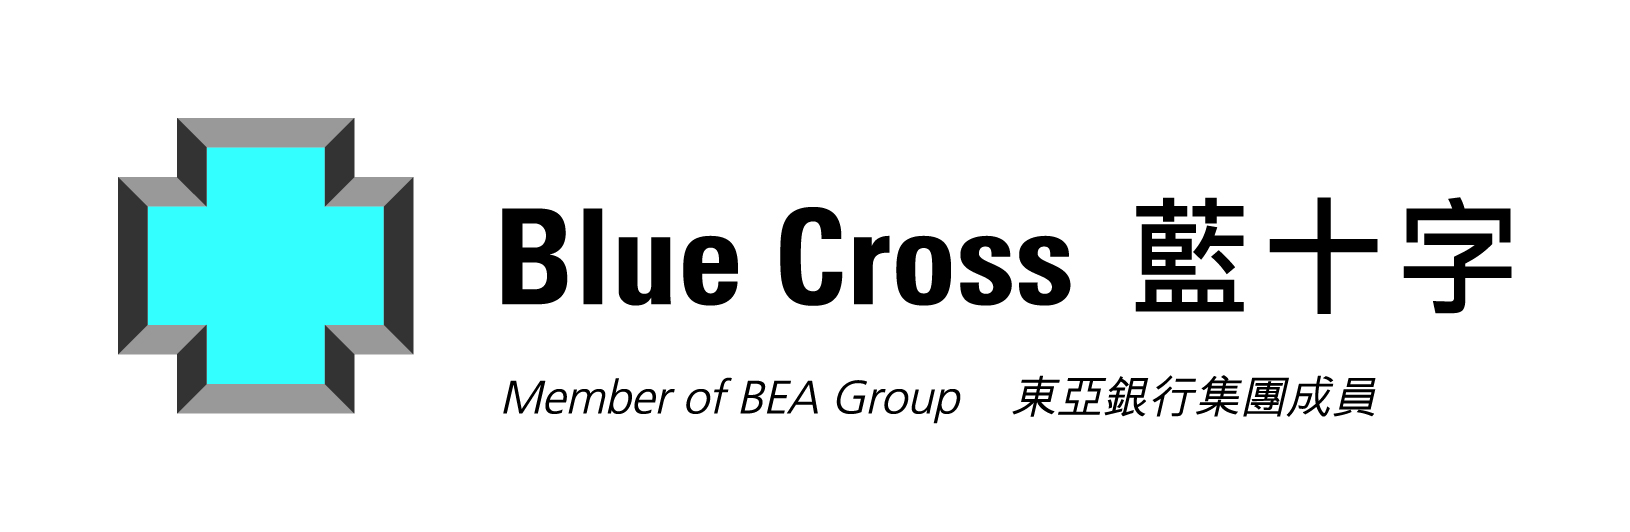 BlueCross Logo Color EC